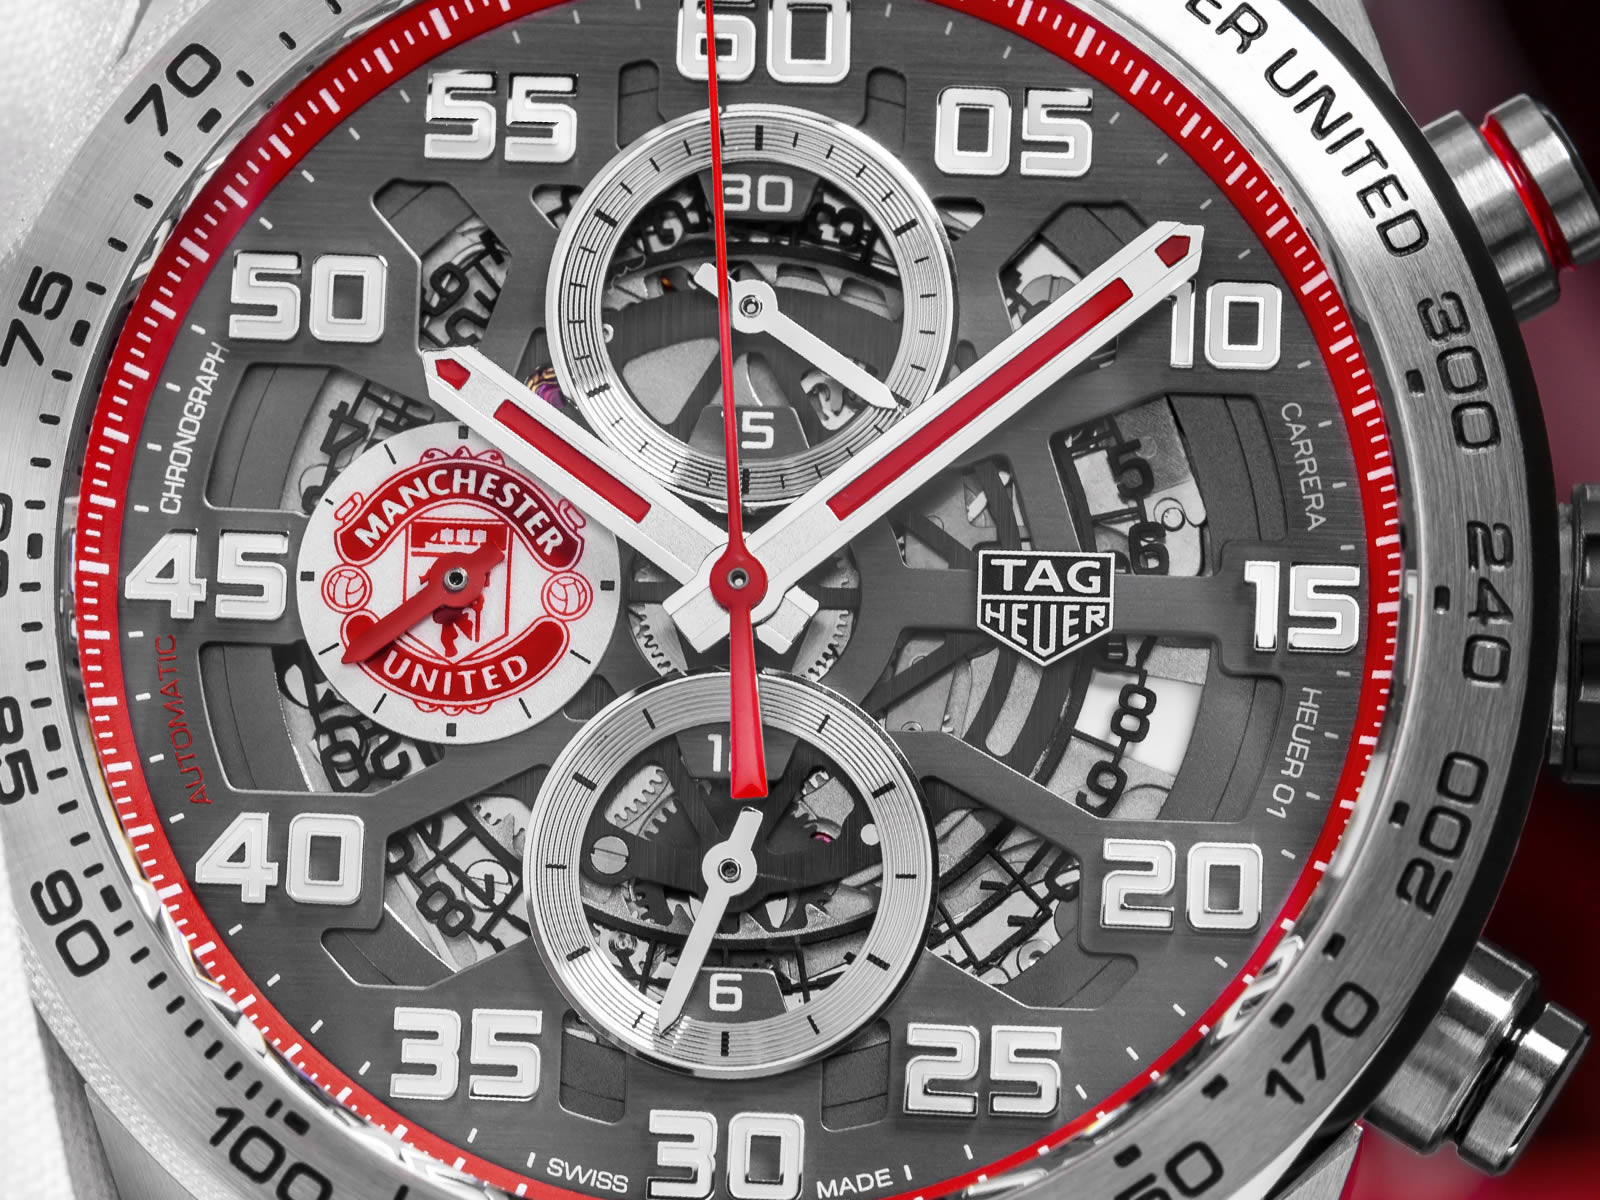 car201m-ft6156-tag-heuer-carrera-heuer-01-manchester-united-special-edition-4-.jpg